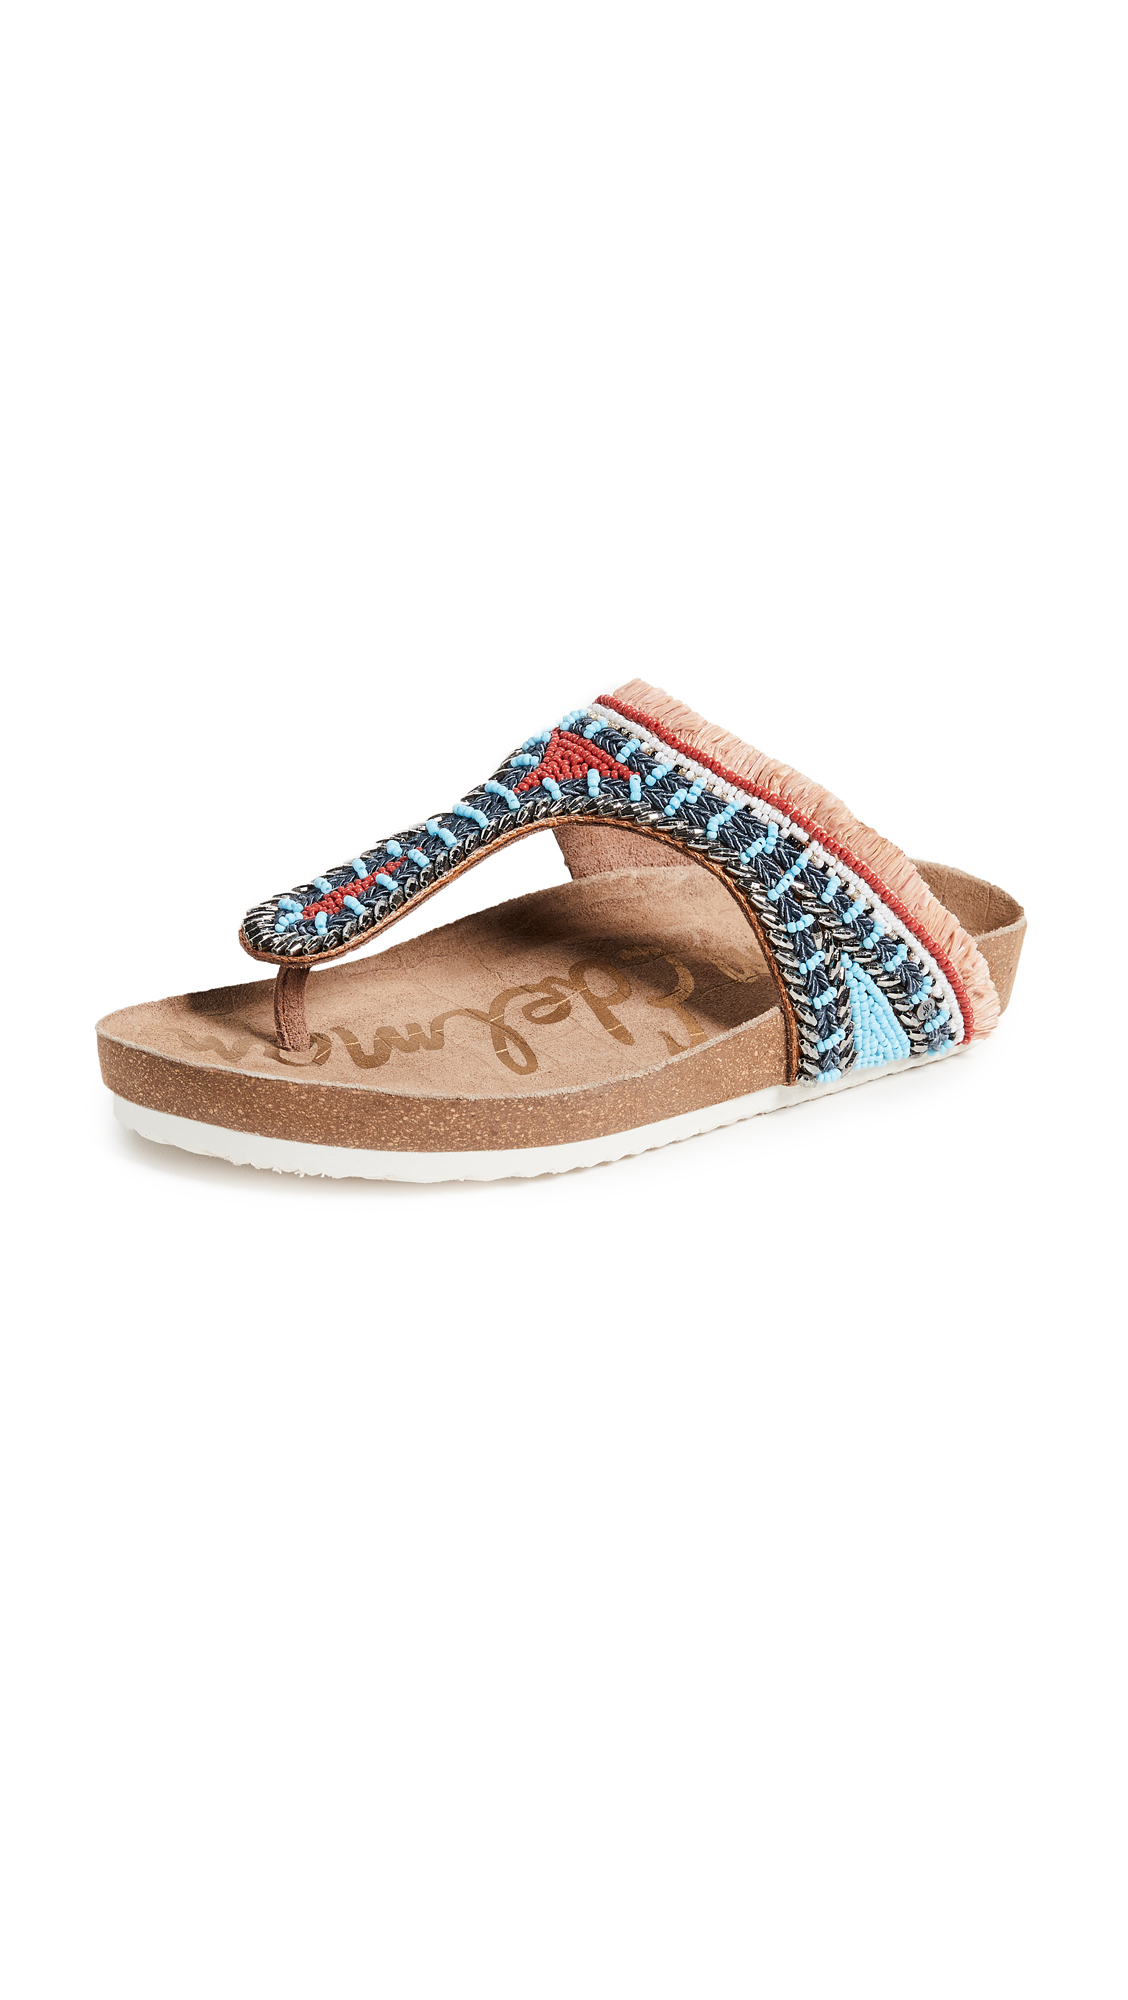 Sam Edelman Olivie 2 Sandals - Saddle/Orange Multi